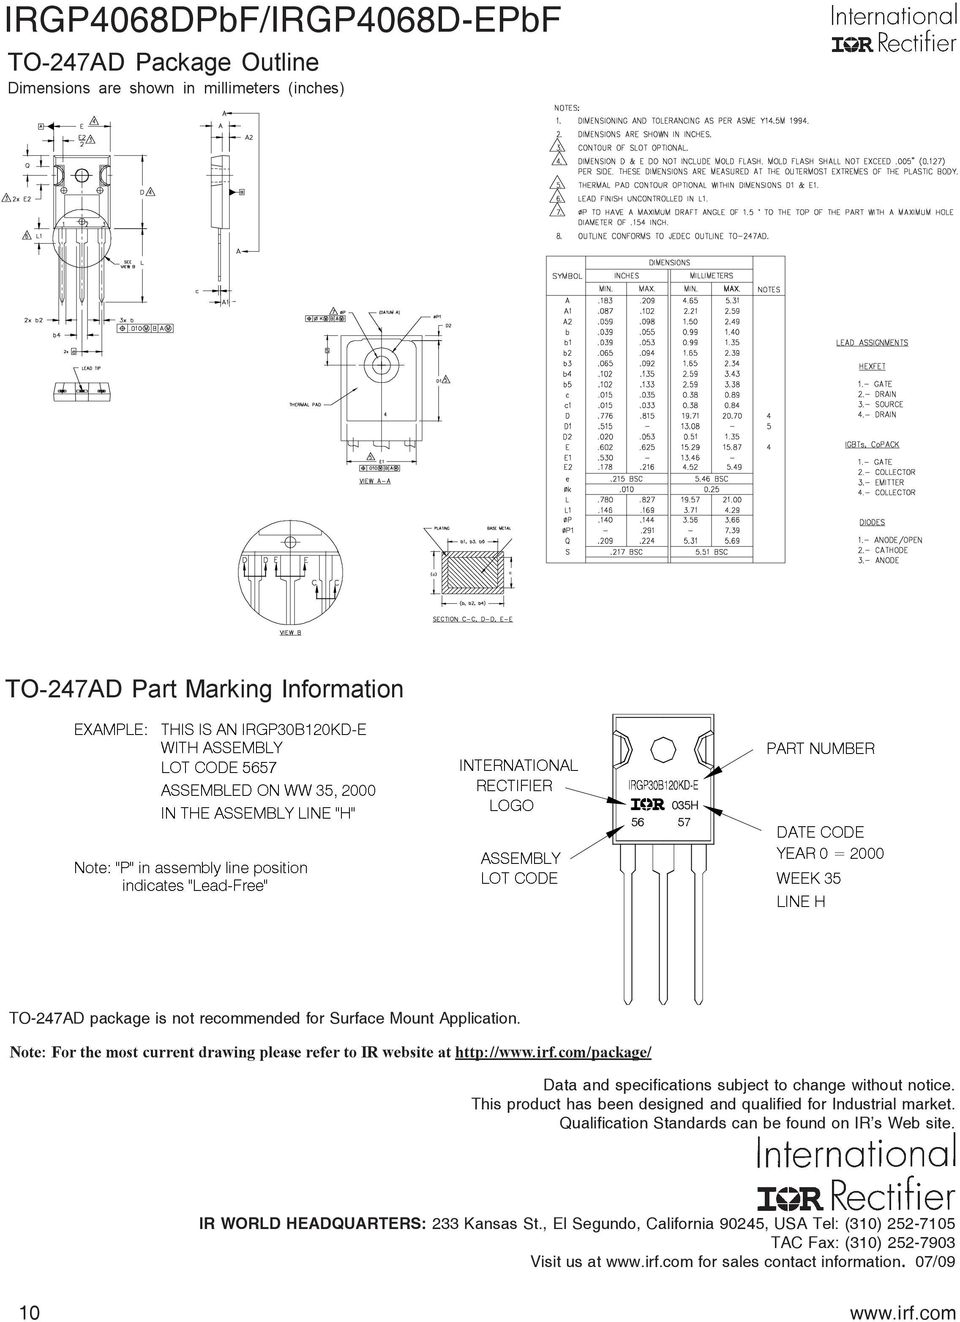 Irgp4068dpbf Irgp4068d Epbf Pdf Power Mosfet Irf740 As A Switch Circuit 300 Volts Dc And 5amp 1 To 247ad Package Is Not Recommended For Surface Mount Application